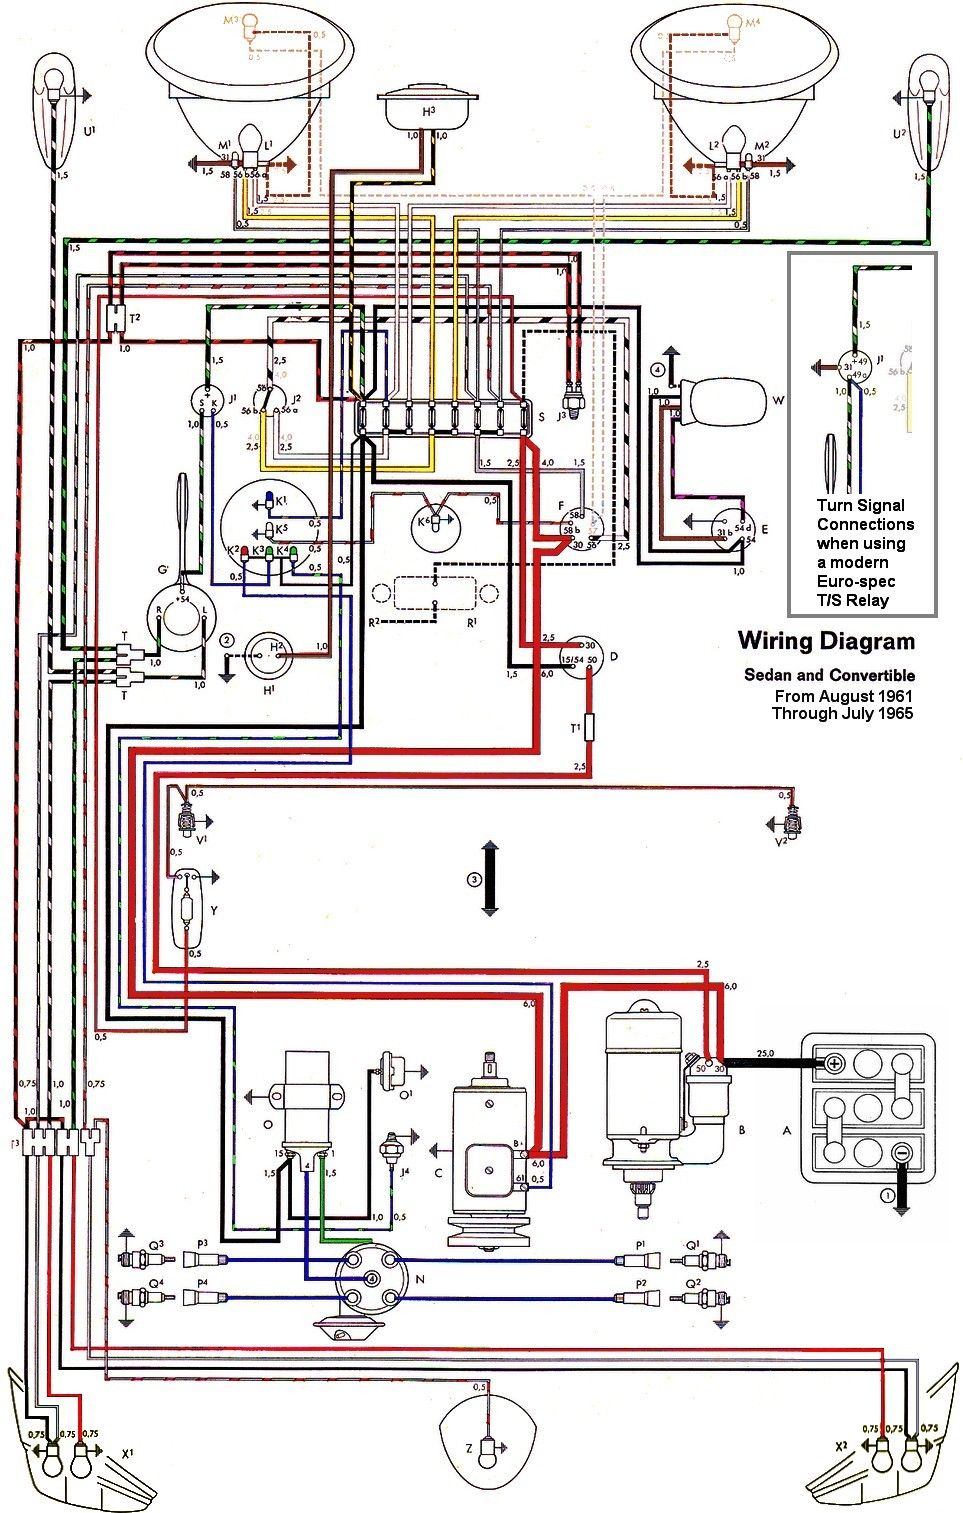 wiring diagram vw beetle sedan and convertible 1961 1965 vw rh pinterest com 74 Super Beetle and Beetle Wiring Diagram 1965 VW Beetle Wiring Diagram